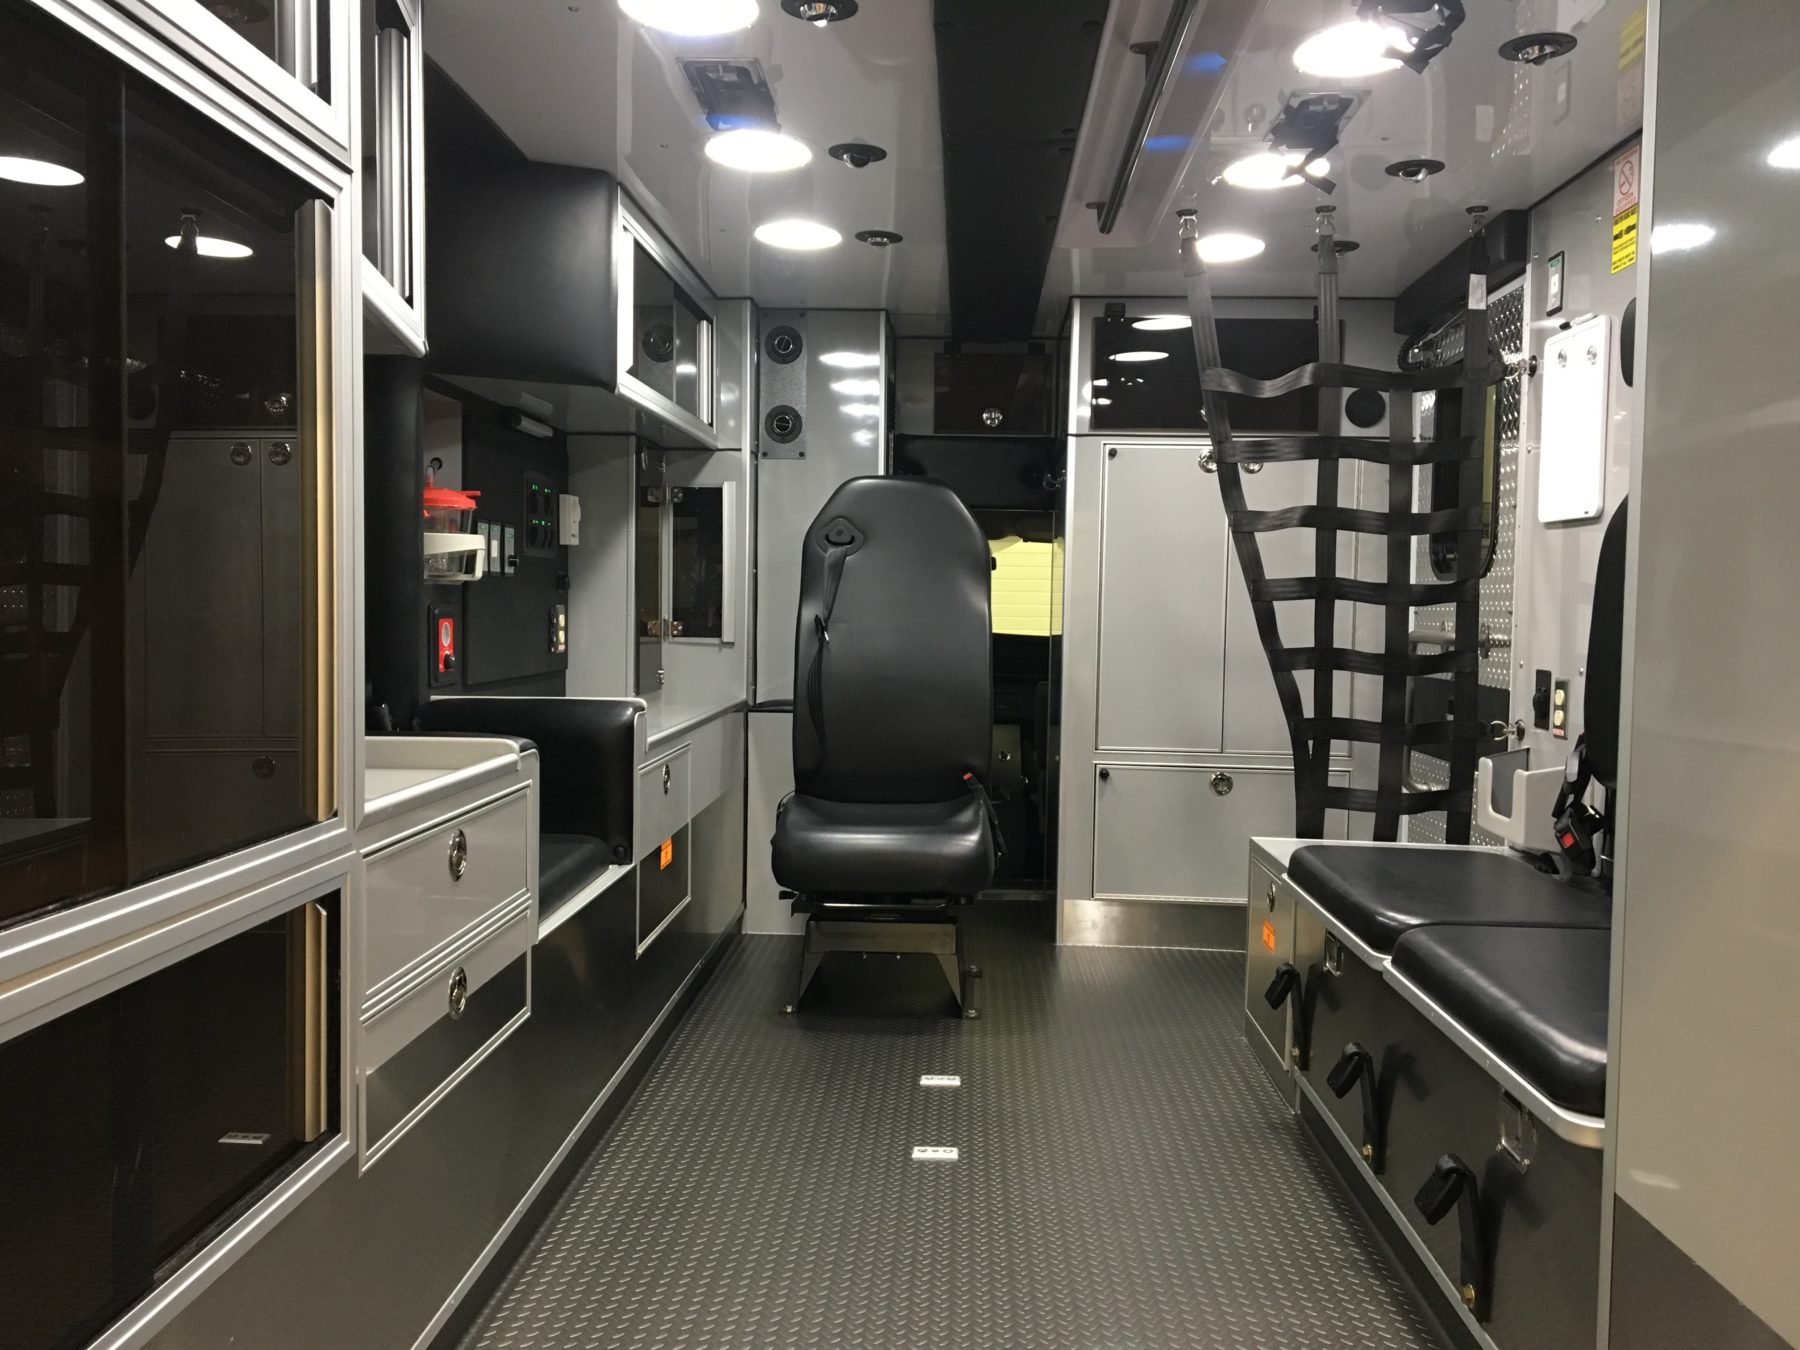 2016 Chevrolet G4500 Type 3 Ambulance For Sale – Picture 3